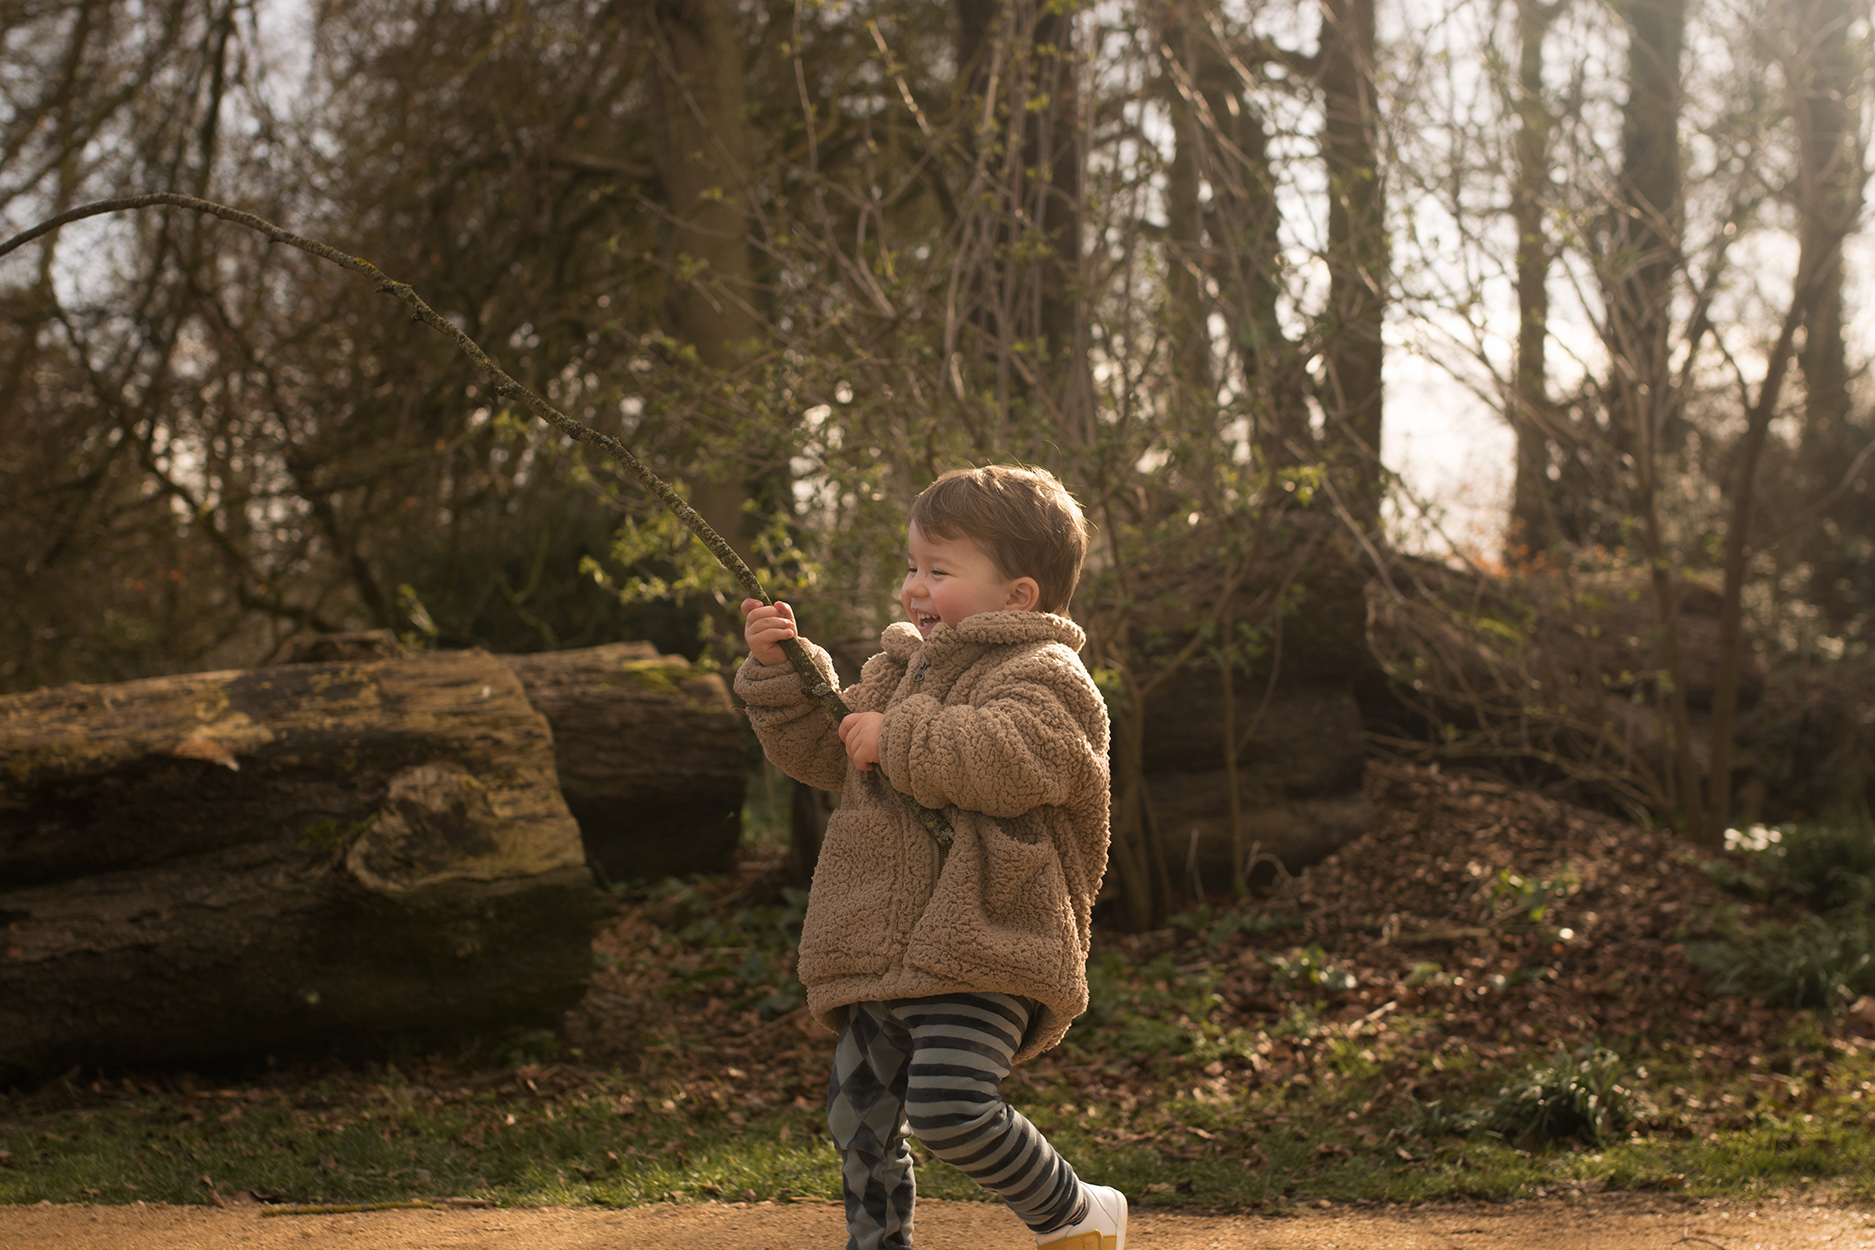 Candid family day in the life photoshoot | Toddler wearing Rylee and Cru fur coat, H&M carnival leggings and Bobux boston trainer out for woodland walk carrying stick